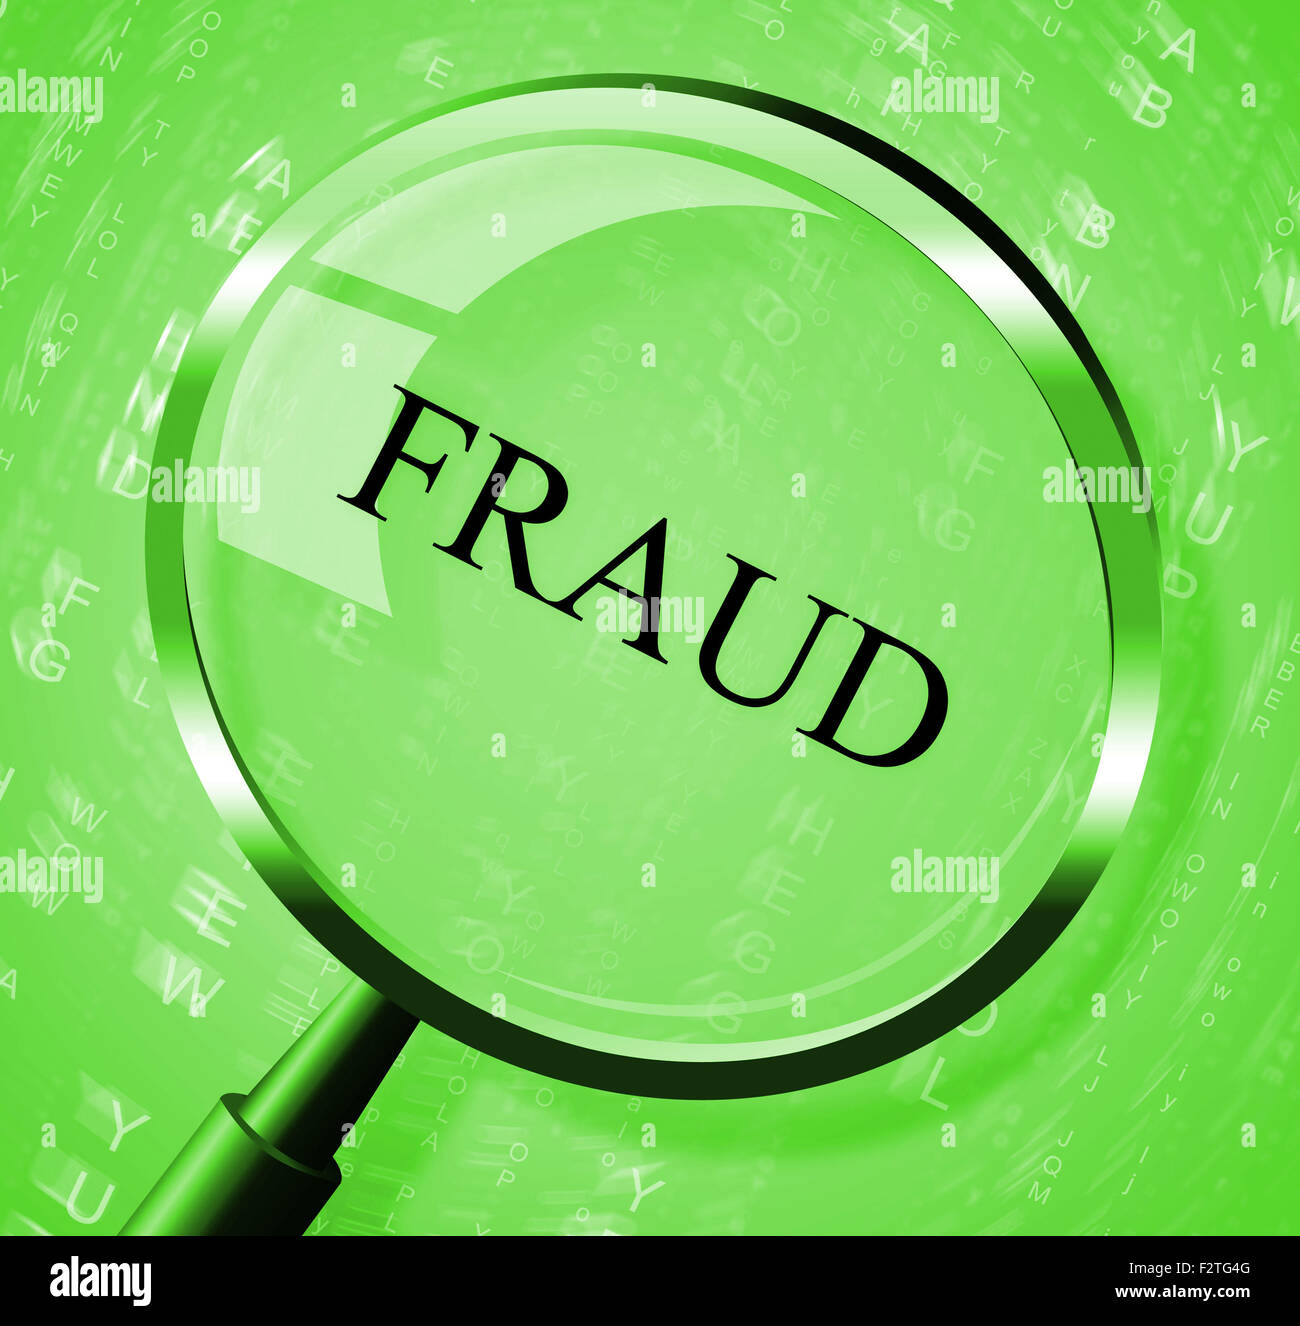 Fraud Magnifier Meaning Rip Off And Scamming Stock Photo: 87820672